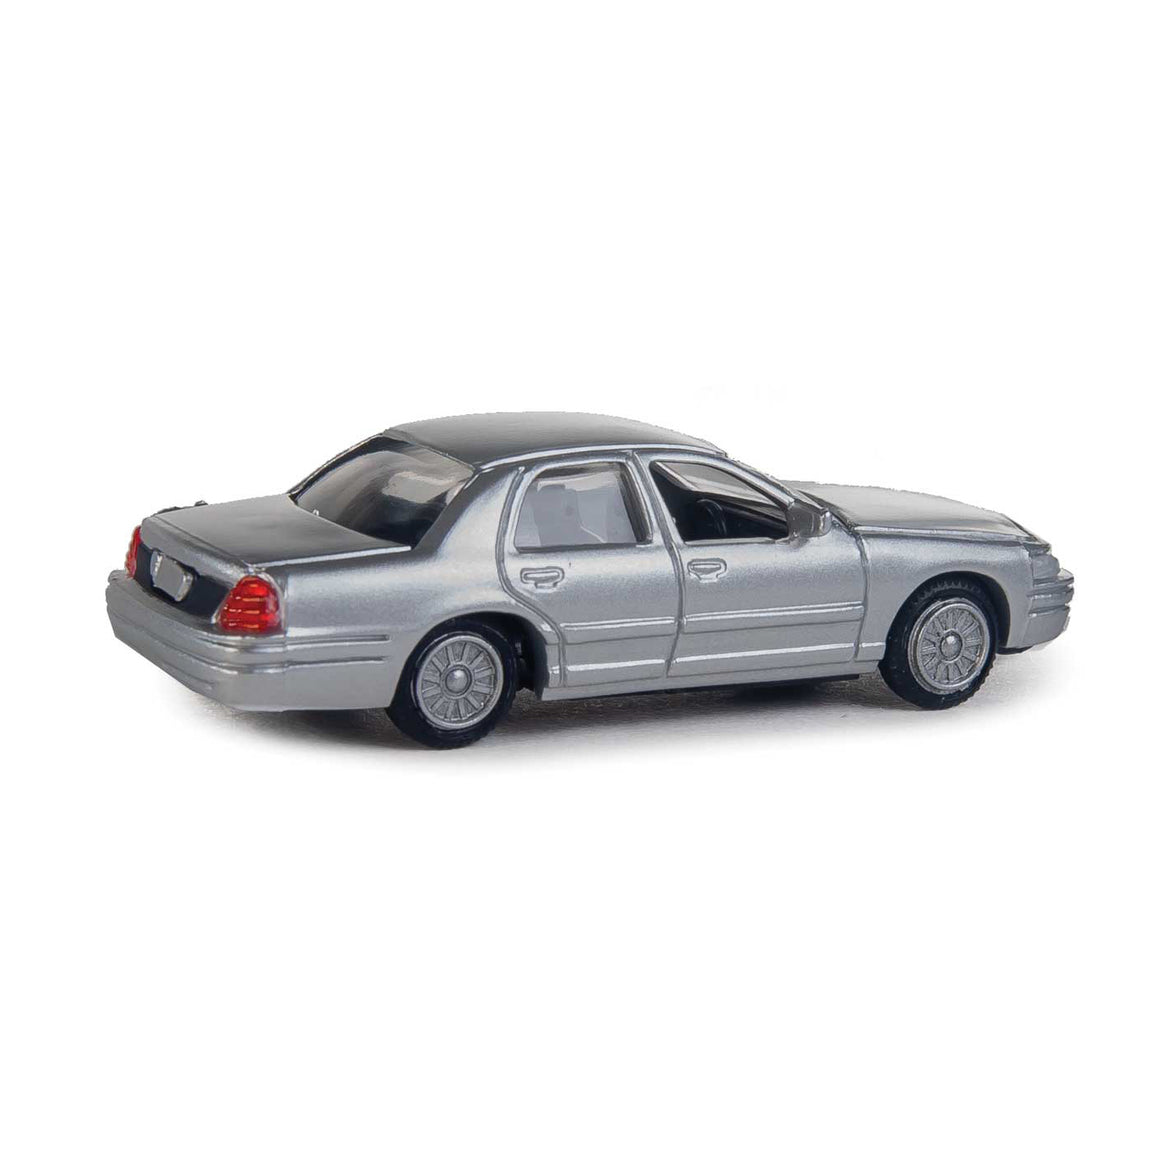 HO Scale: Ford® Crown Victoria Interceptor - Unmarked Silver